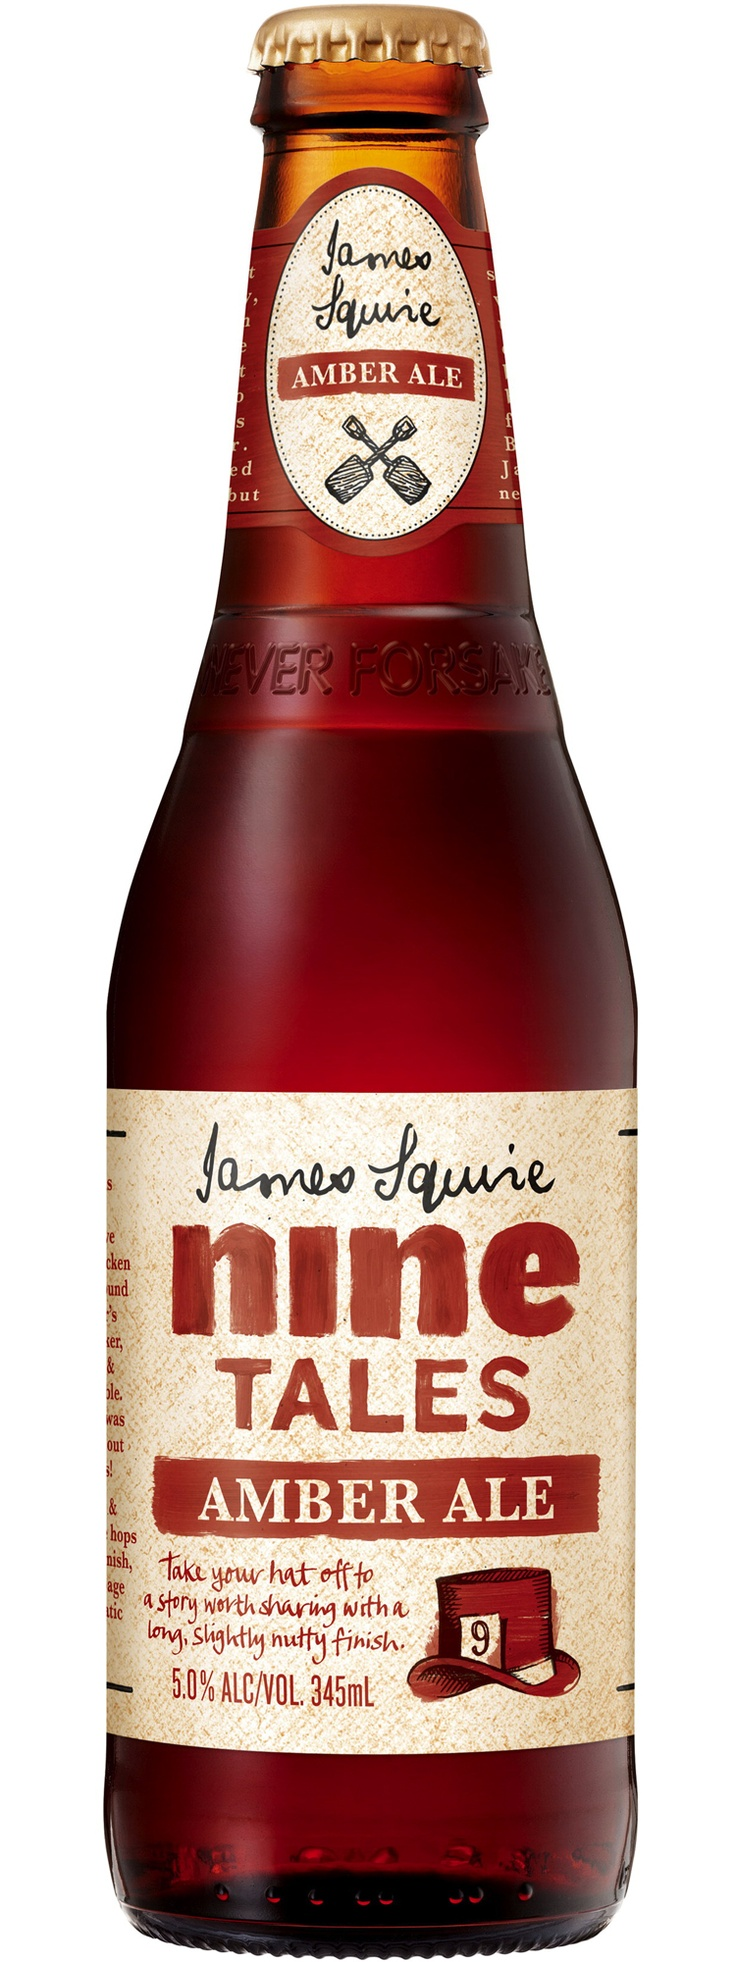 James Squire Nine Tales Amber Ale (replaced amber ale) - Sydney, Australia